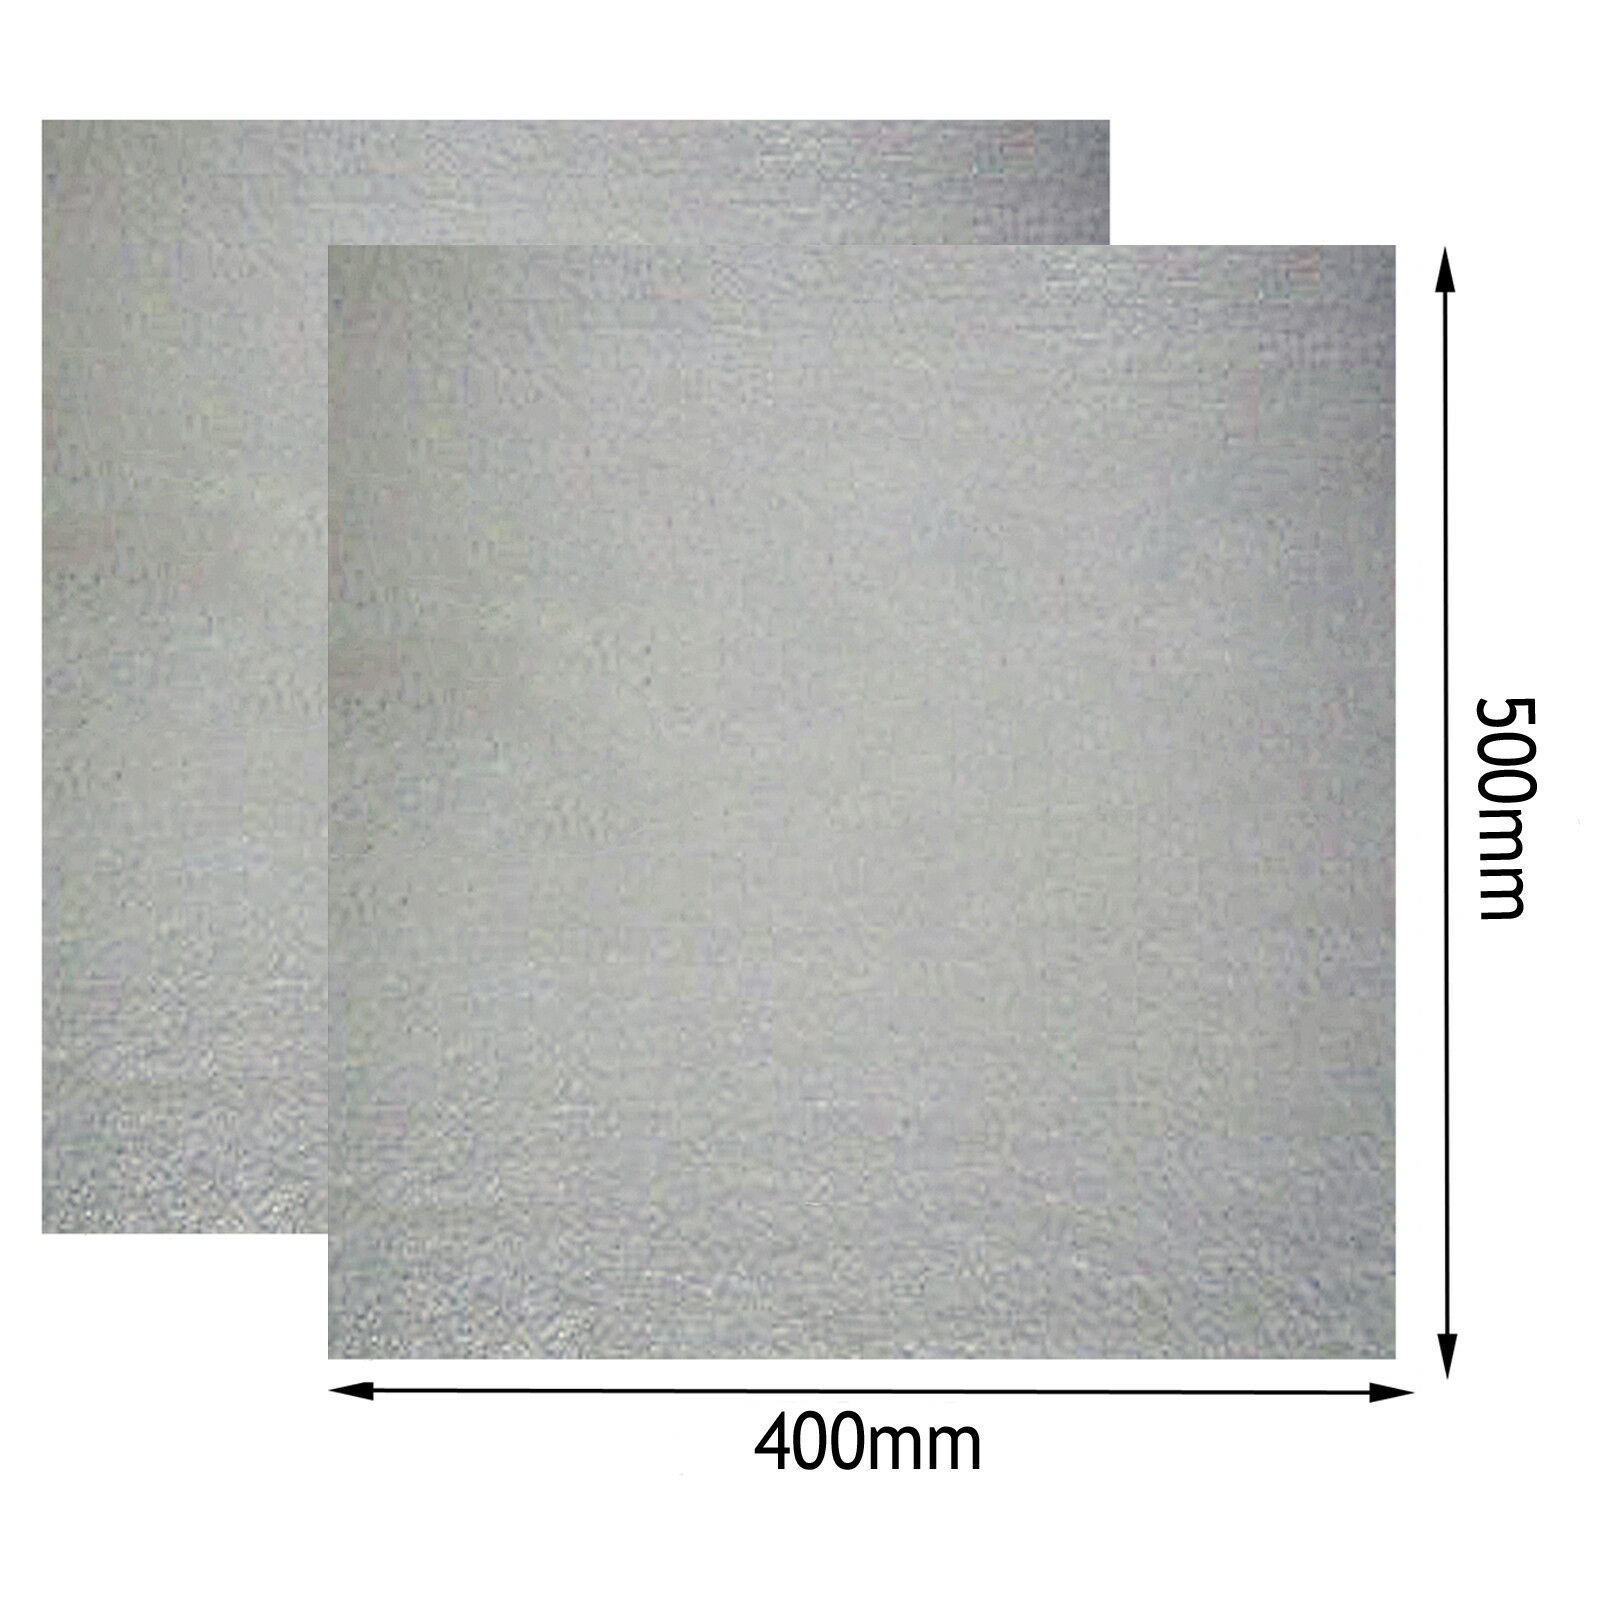 Universal Wave Guide MICA Roof Liner Cover for GOODhommeS Microwave 400x500mm x 2